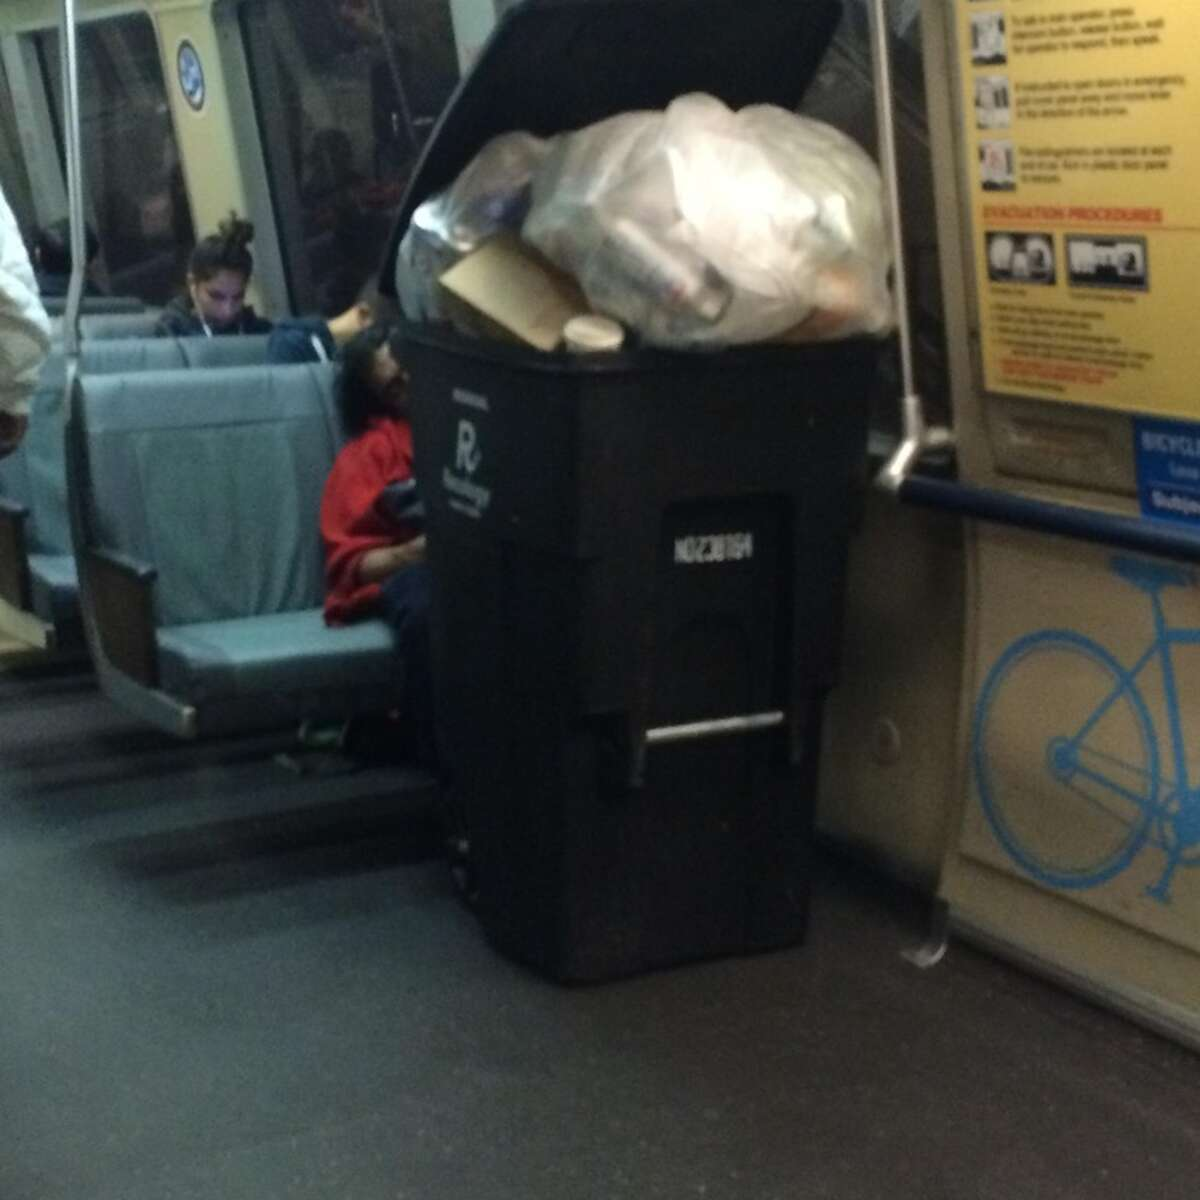 Houston Garcia snapped this photo of a man transporting a stuffed garbage can on BART.